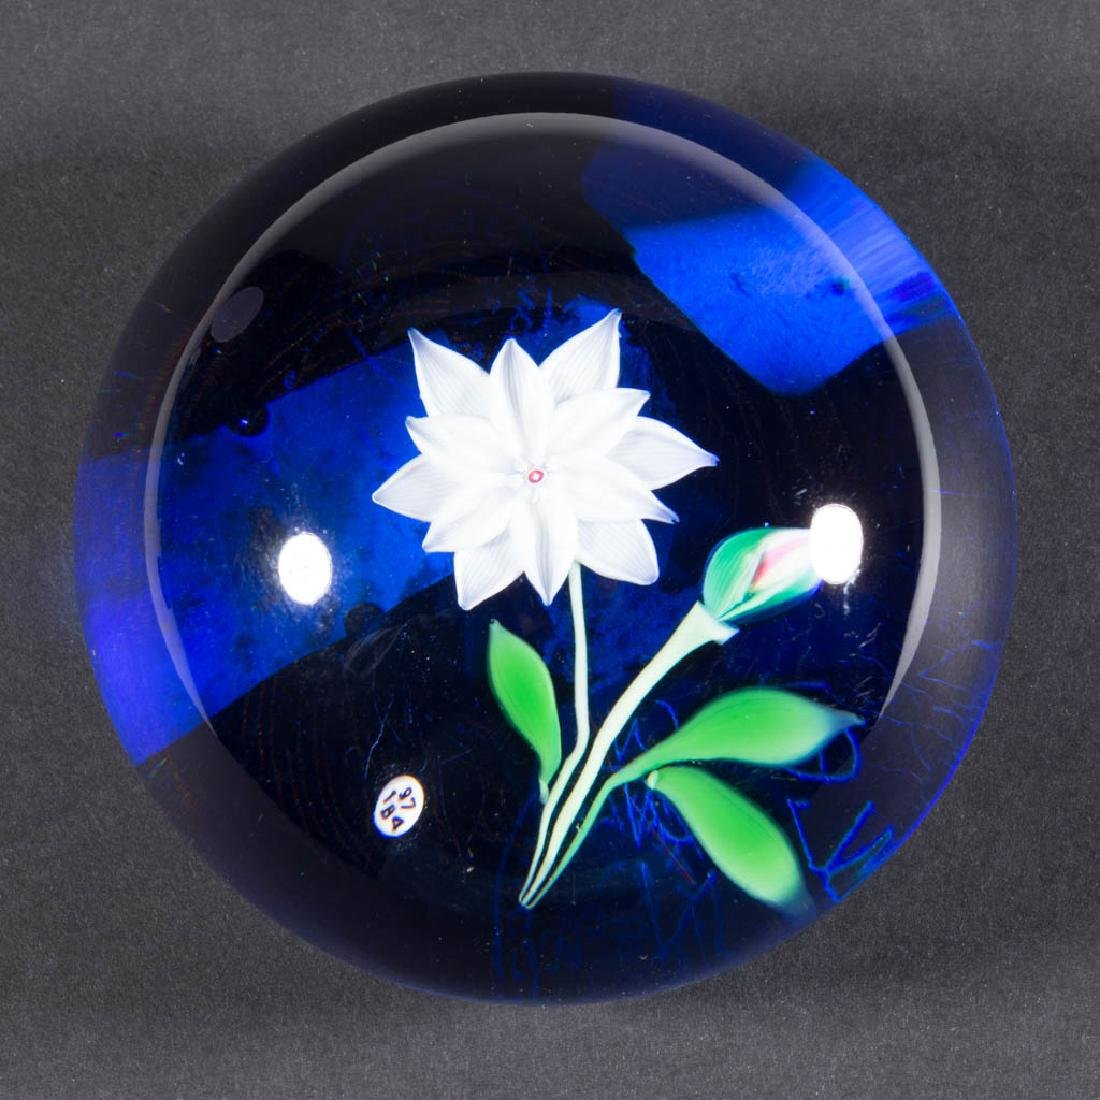 CONTEMPORARY BACCARAT ART GLASS LAMPWORK PAPERWEIGHT